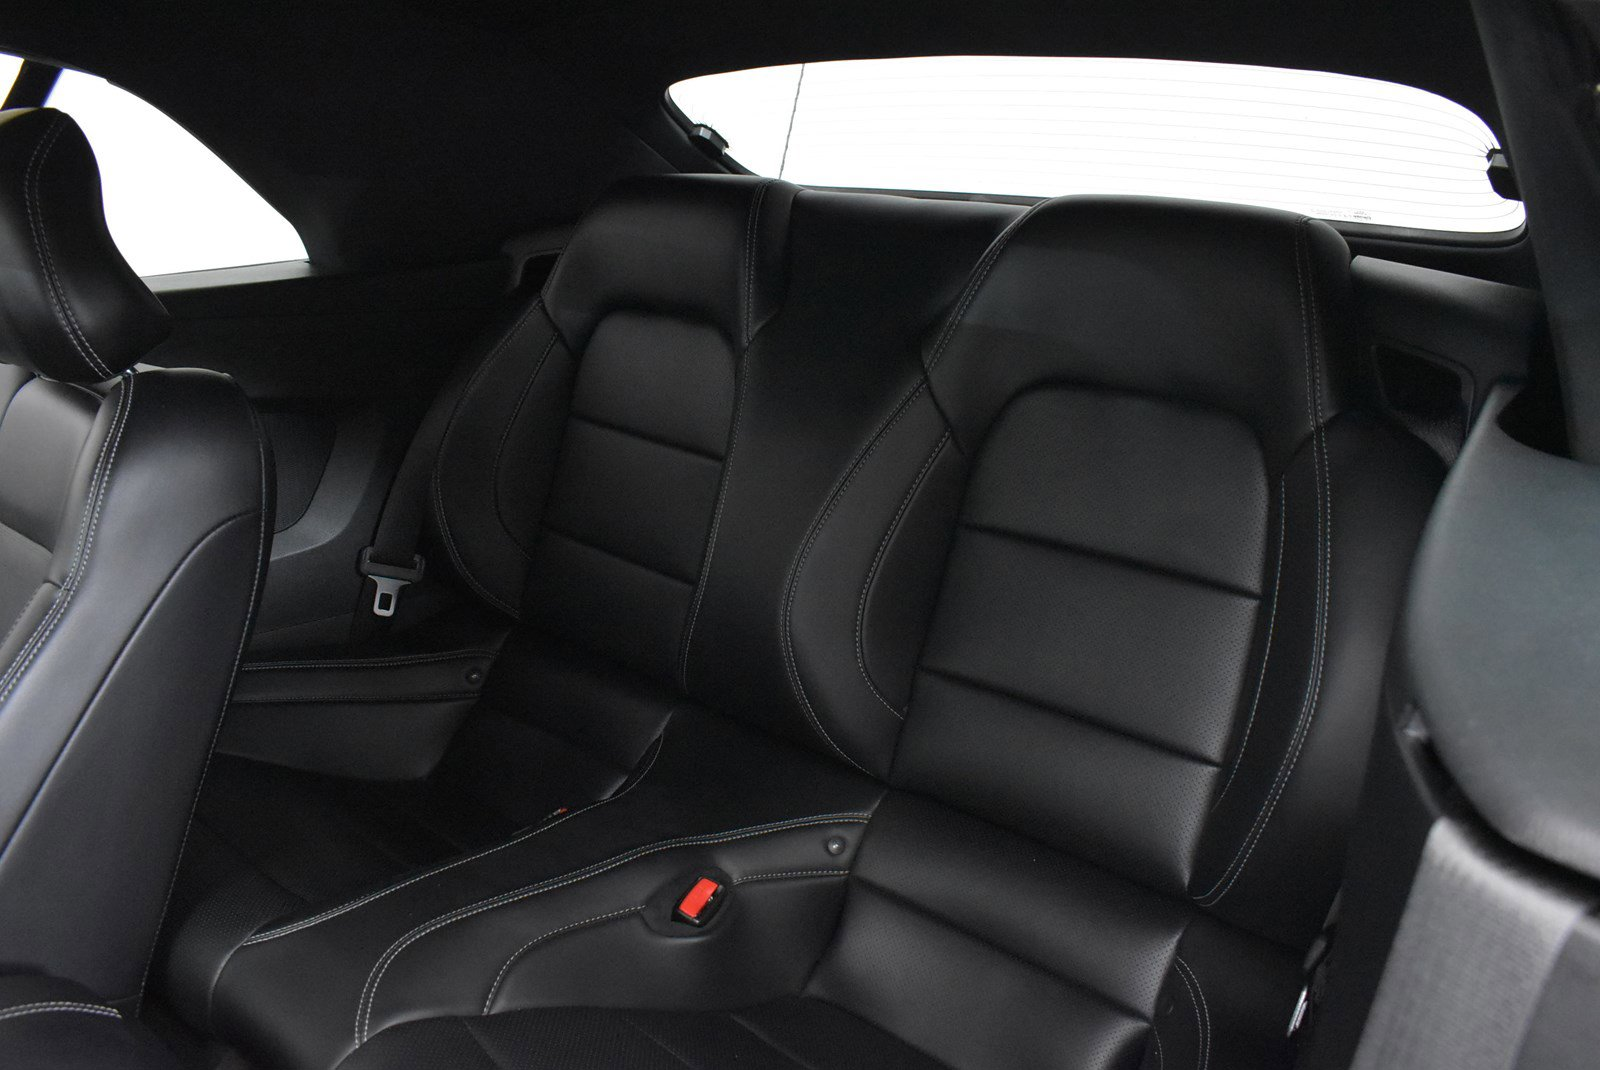 Astonishing Pre Owned 2015 Ford Mustang Gt Premium Andrewgaddart Wooden Chair Designs For Living Room Andrewgaddartcom